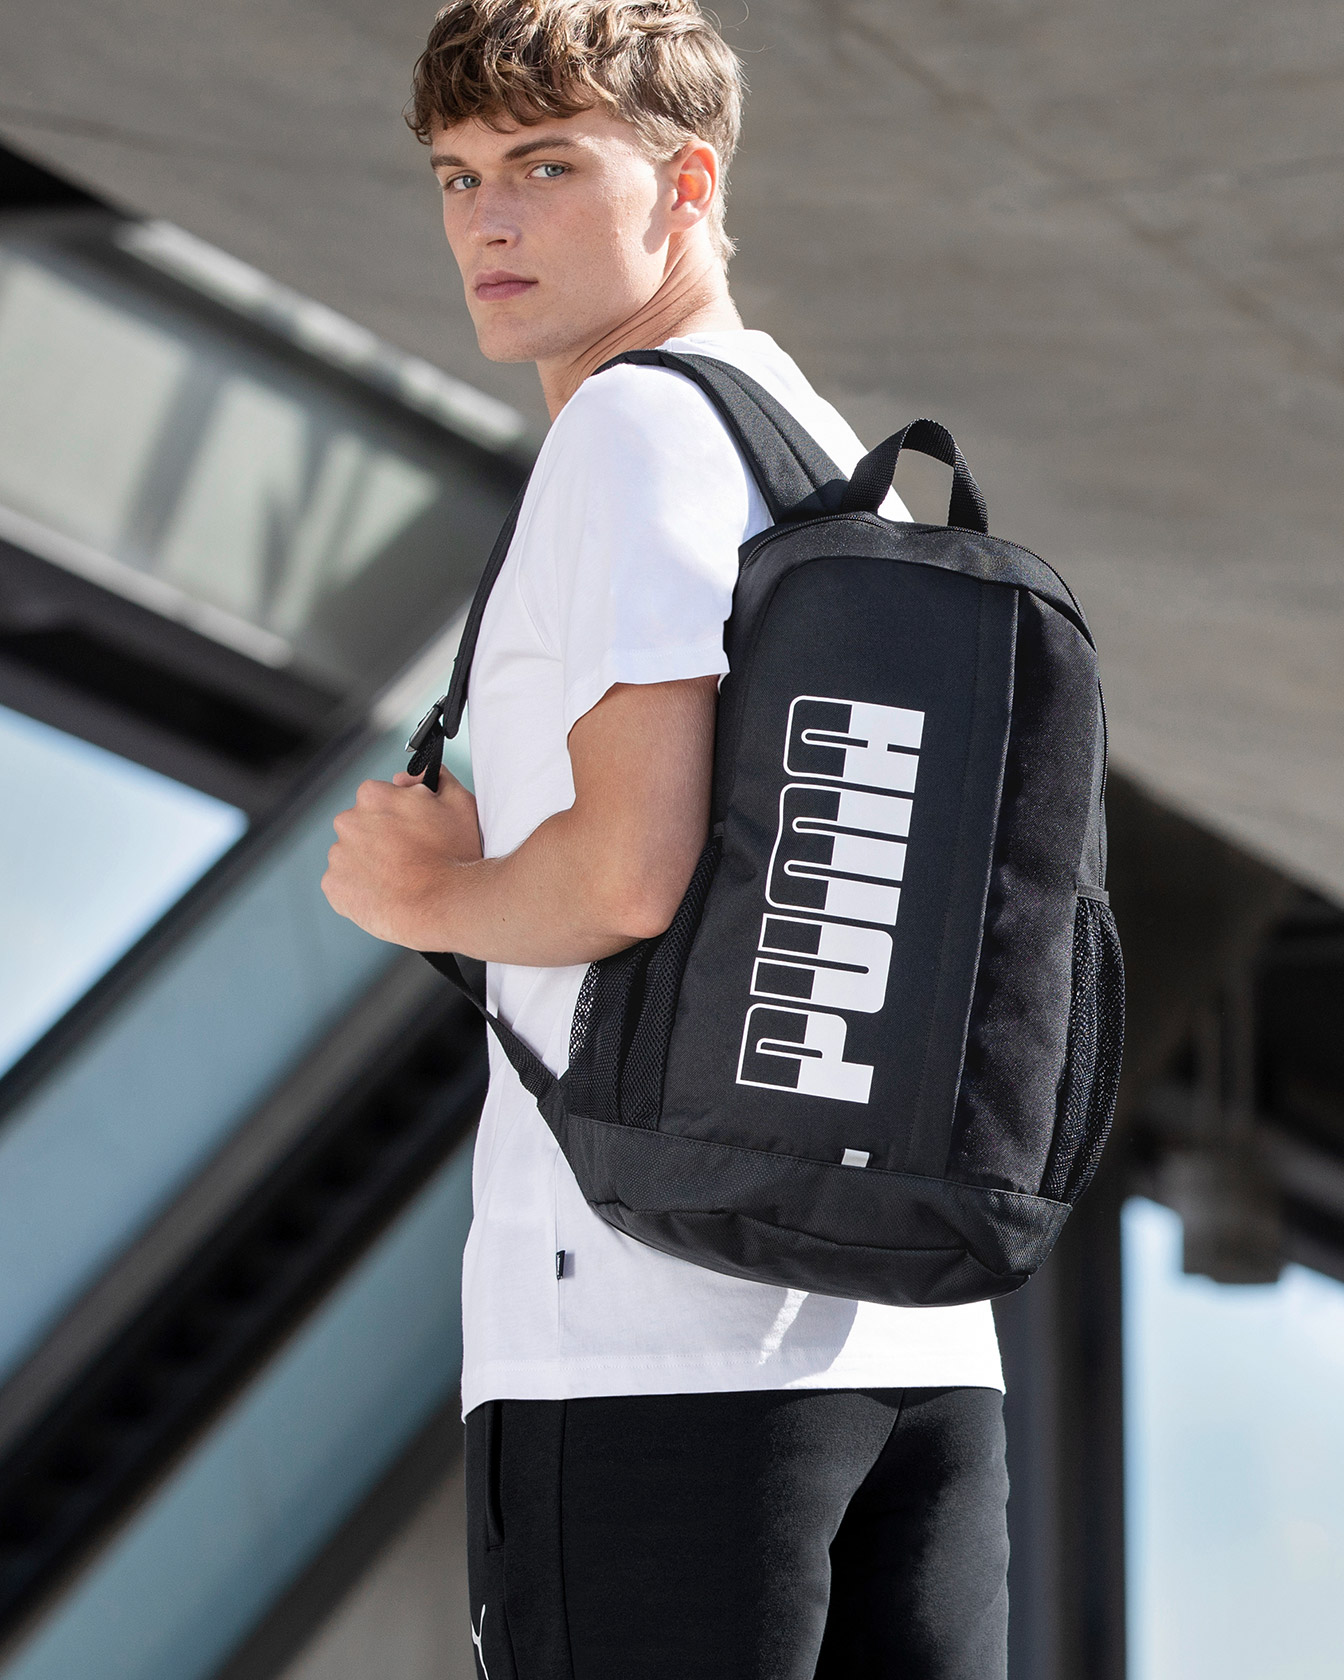 Model with PUMA Backpack